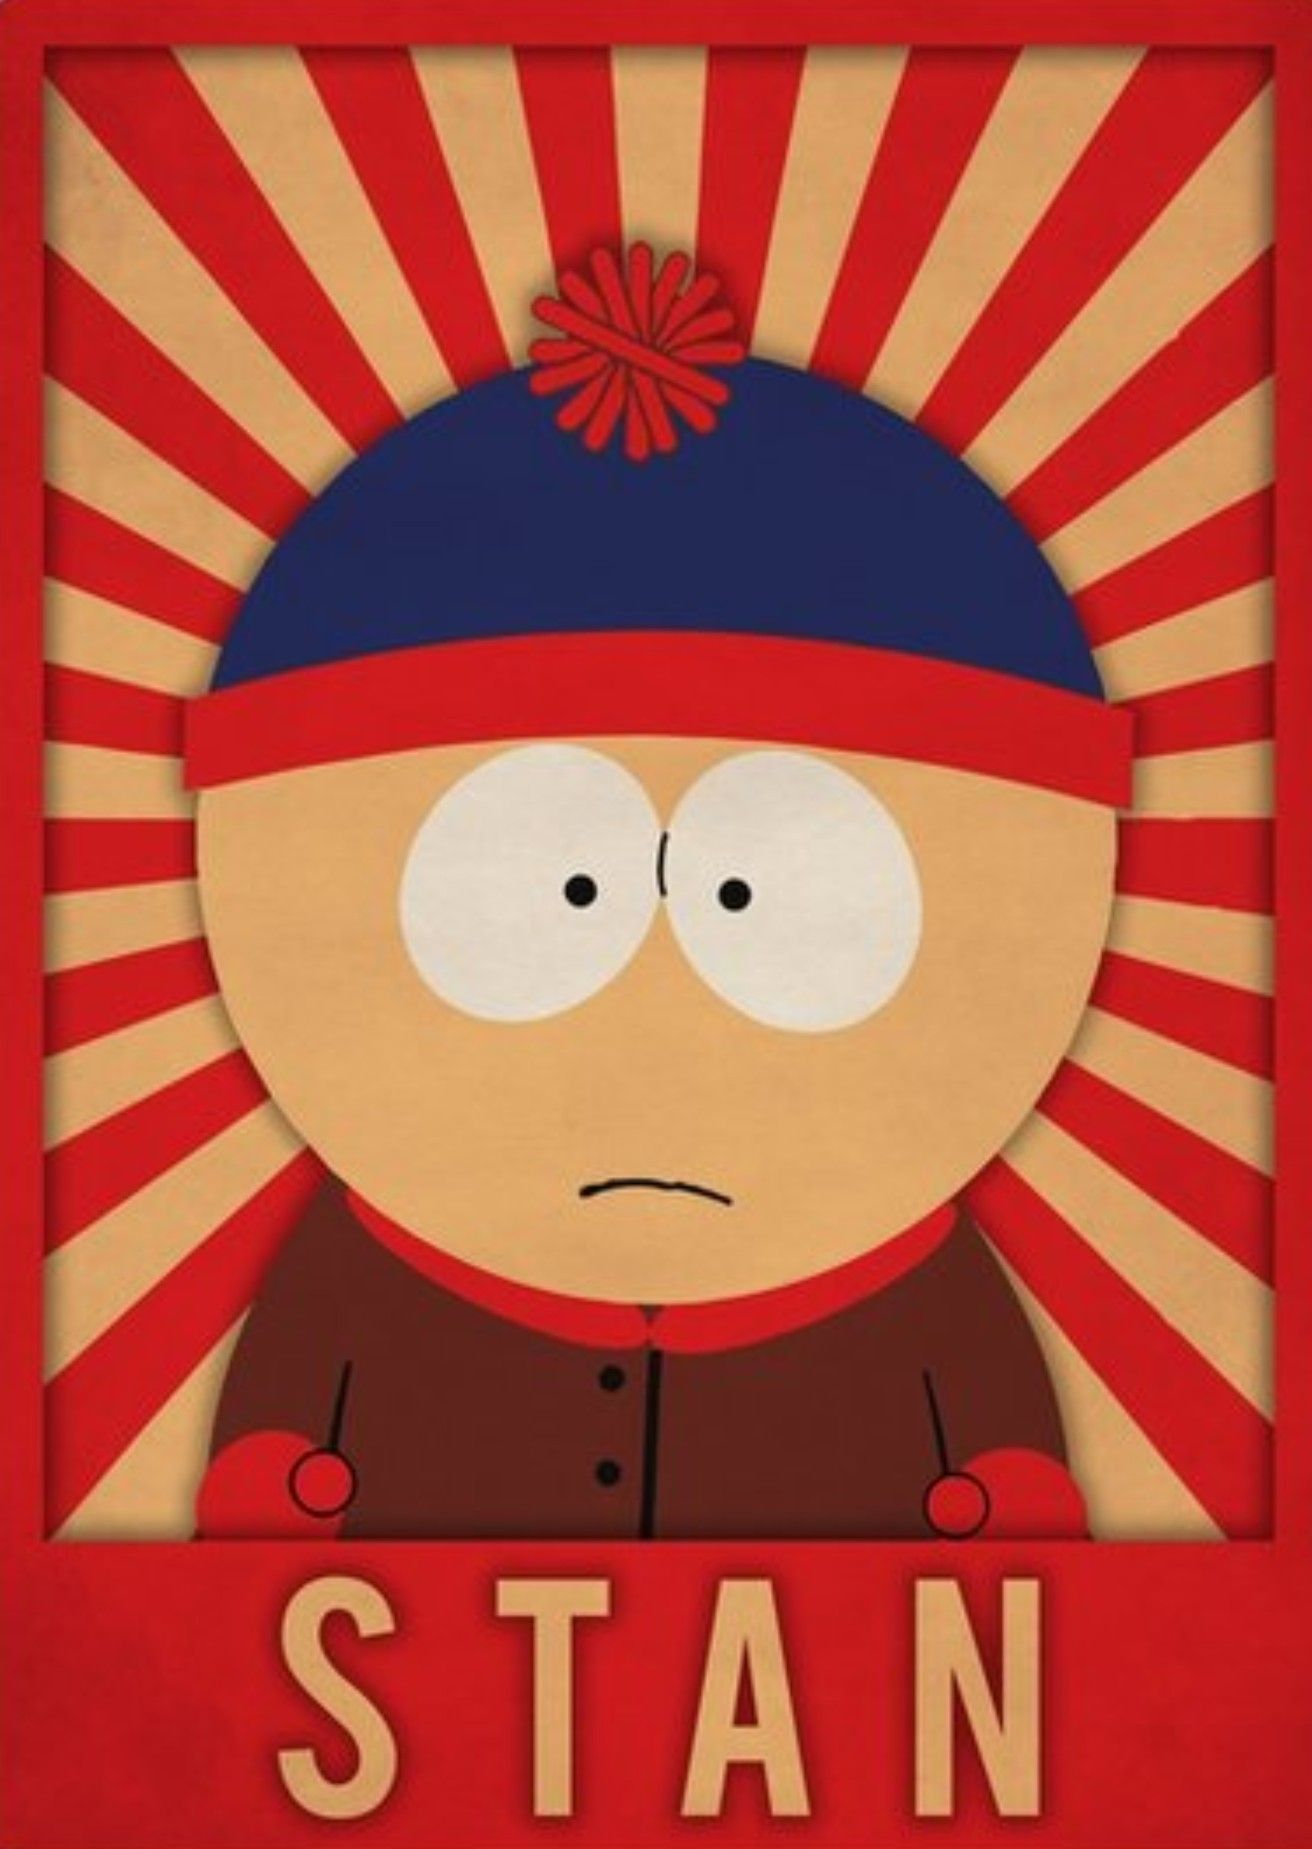 Stan Marsh South Park South Park Poster South Park Characters